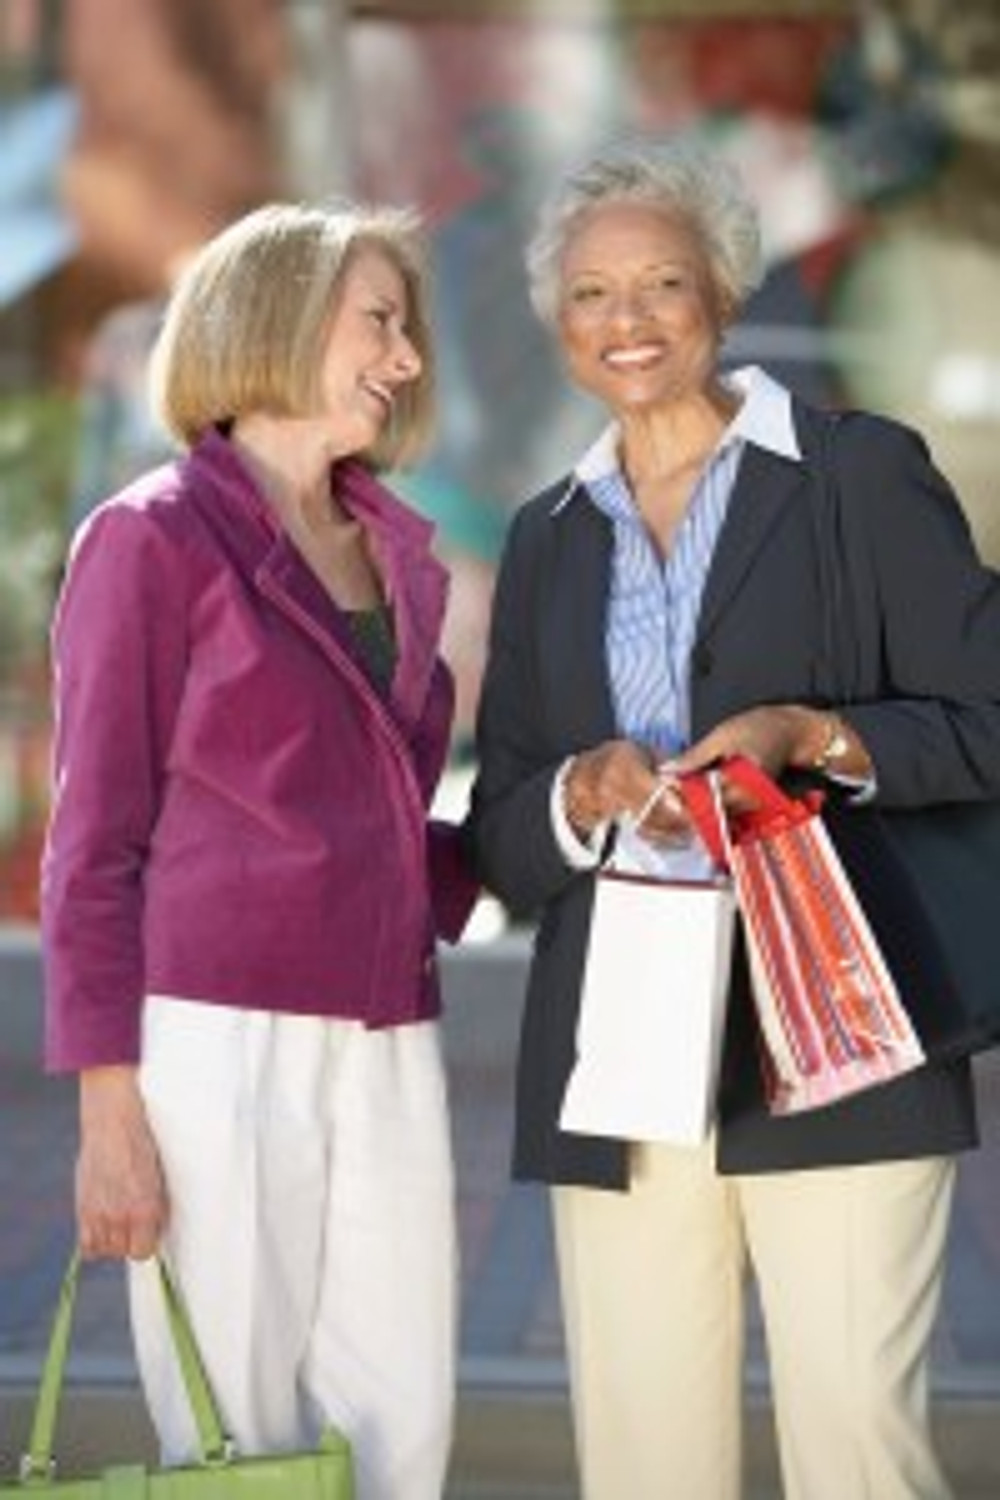 Women on Shopping Trip